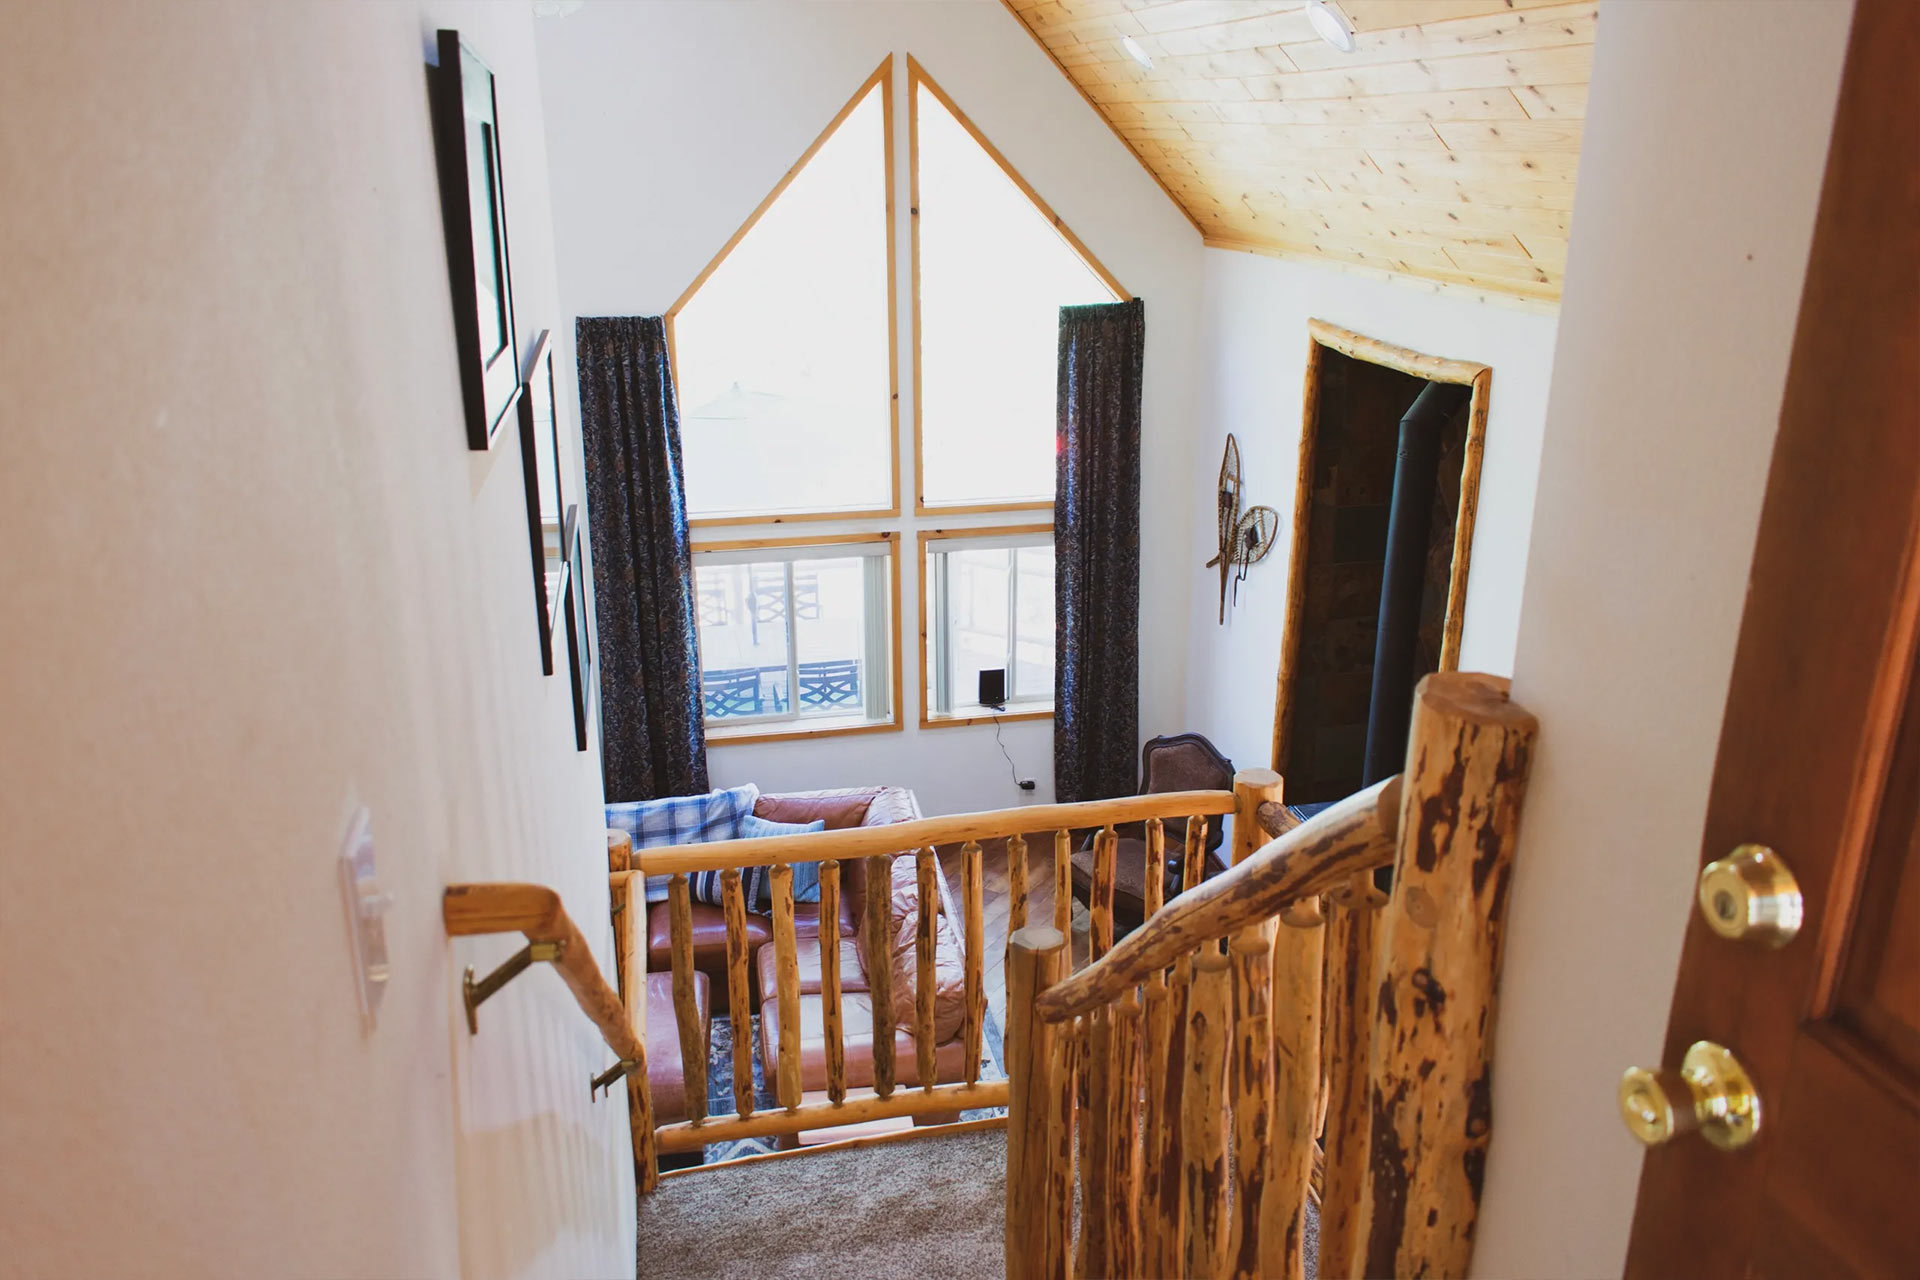 View from the top of the stairway down to the living room at the residence